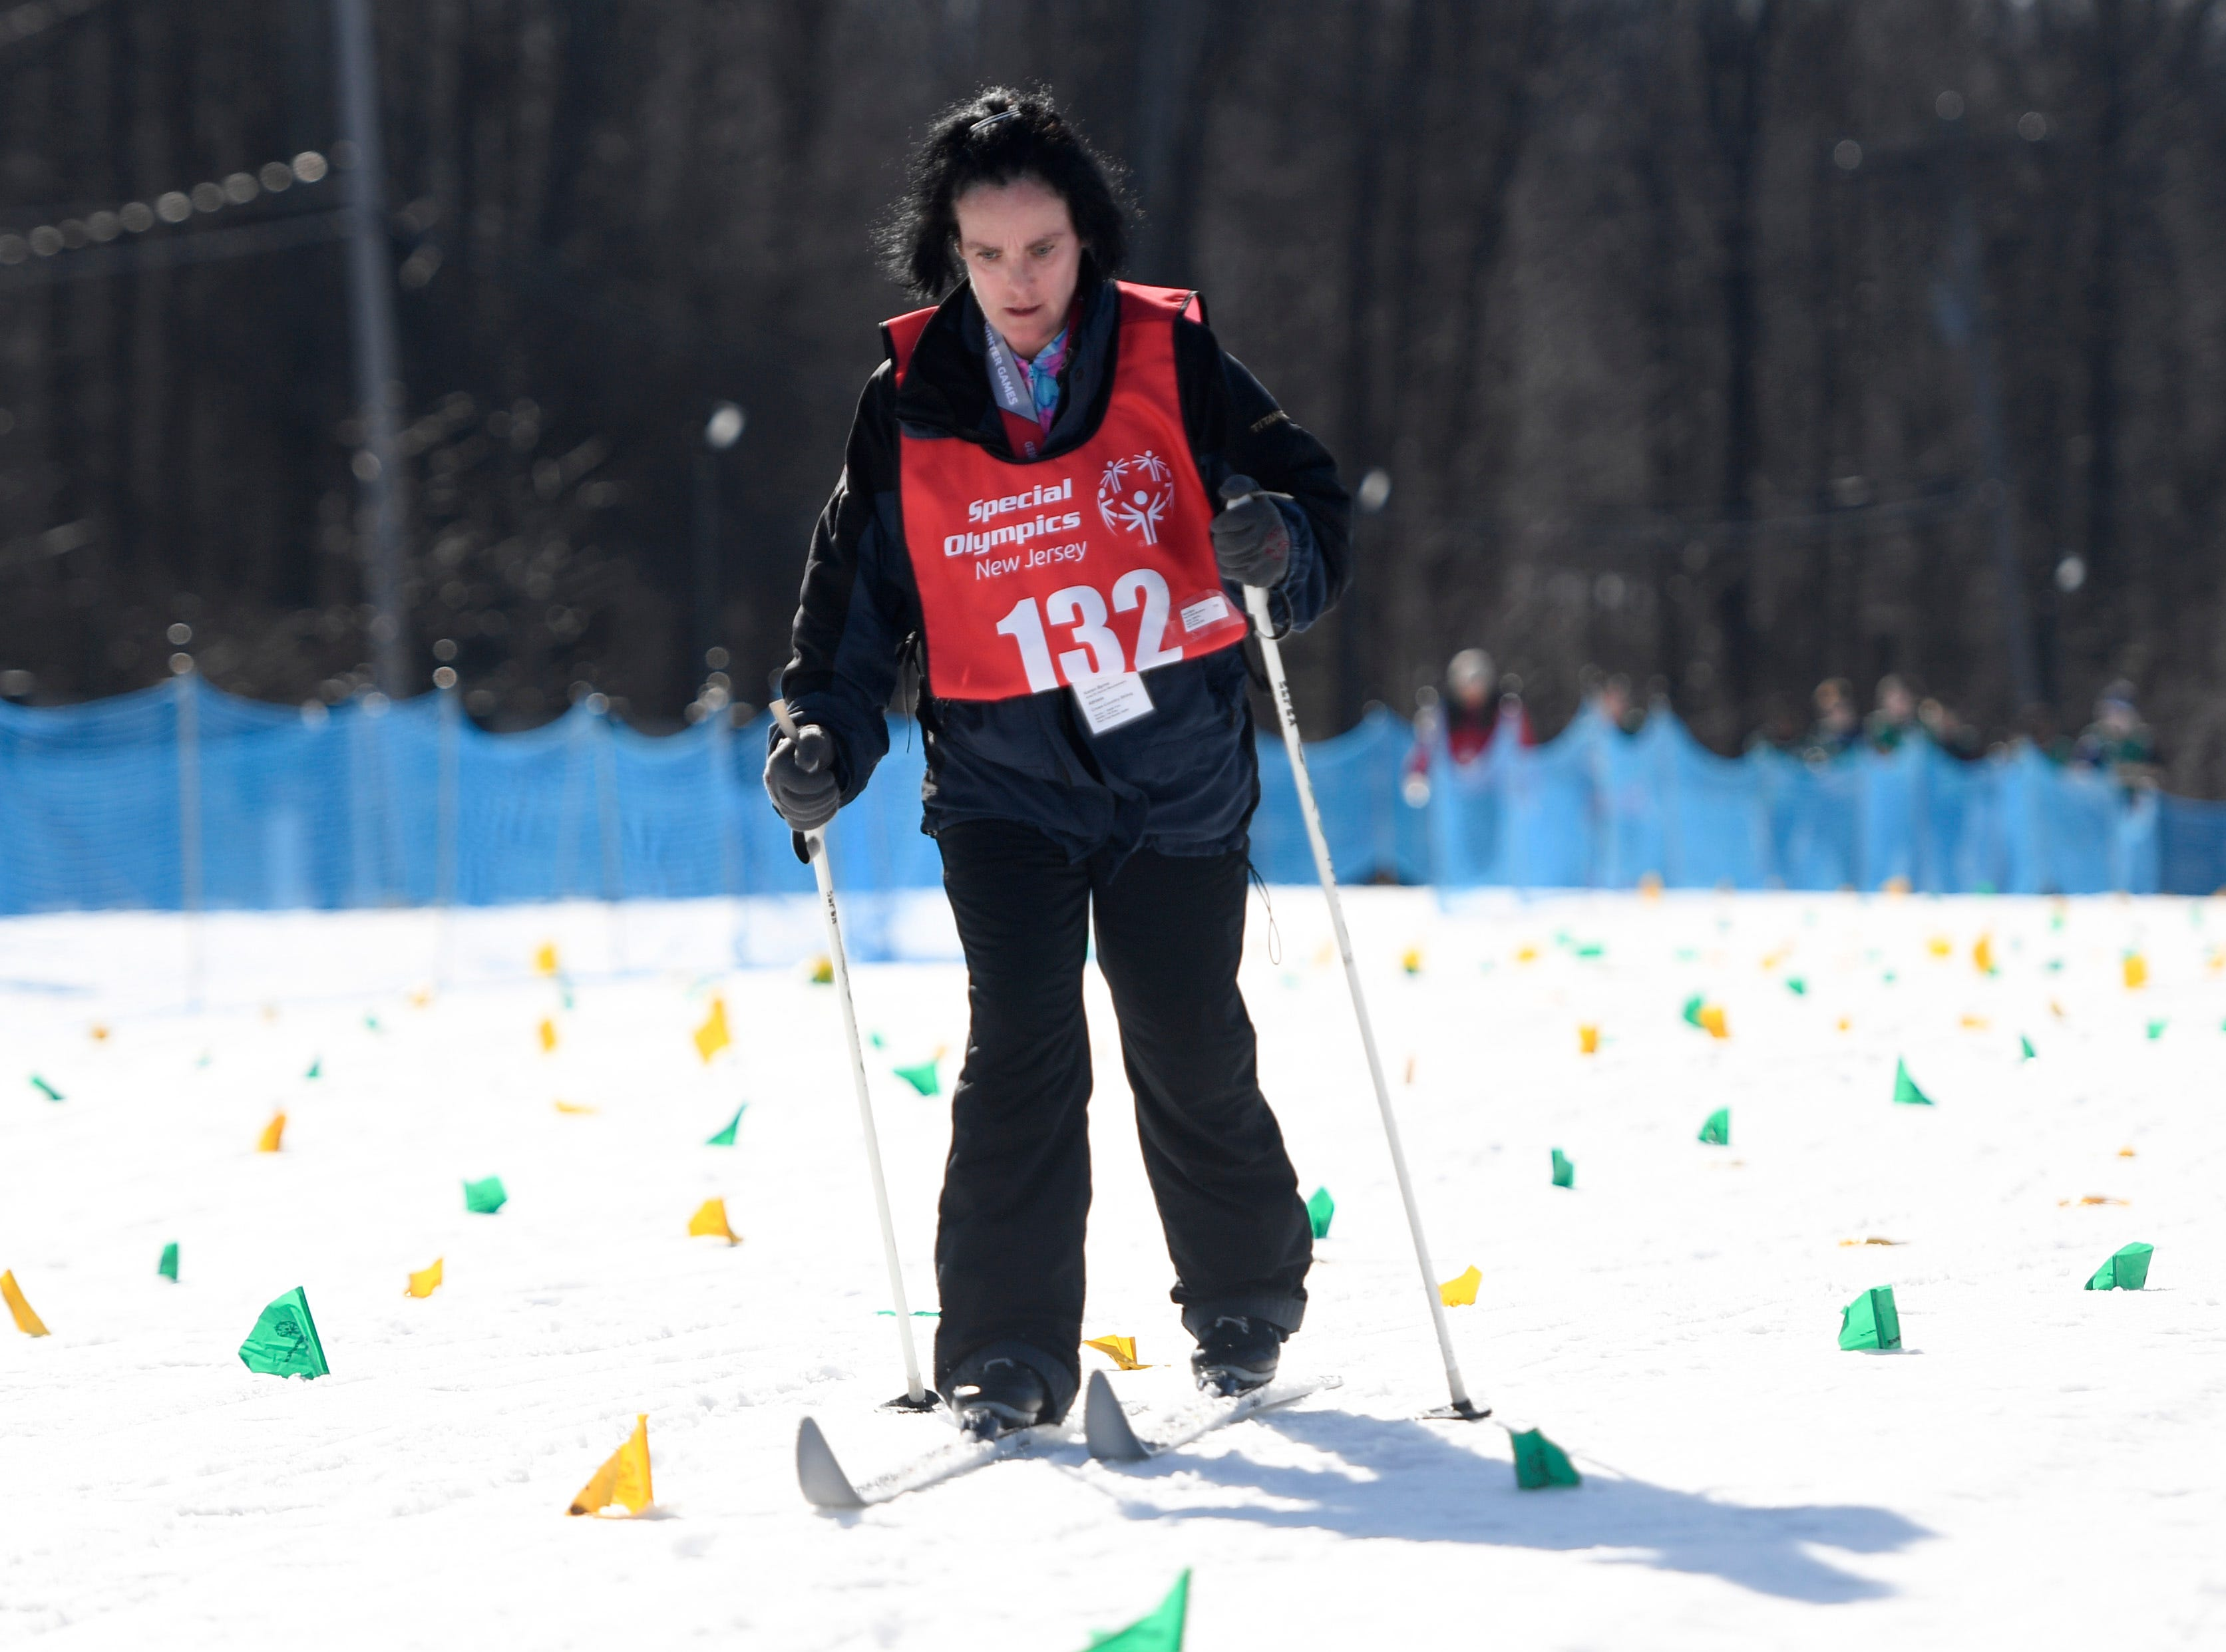 Karen Byrne of Maywood finishes the 1K cross-country skiing final during the Special Olympics New Jersey 2019 Winter Games on Tuesday, Feb. 5, 2019, in Vernon.